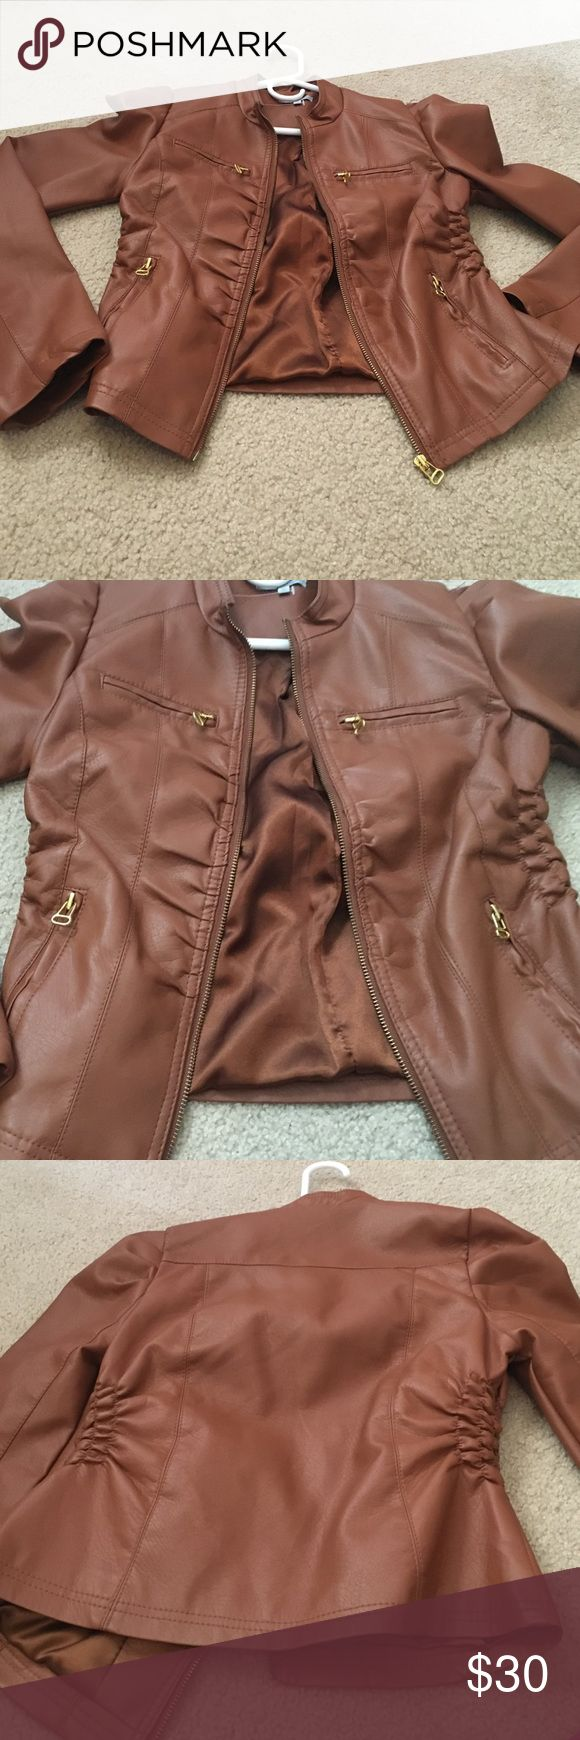 """Leather jacket """"pleather"""" cognac Charlotte Russe jacket in cognac never worn. Size medium. Not real leather. Jackets & Coats"""